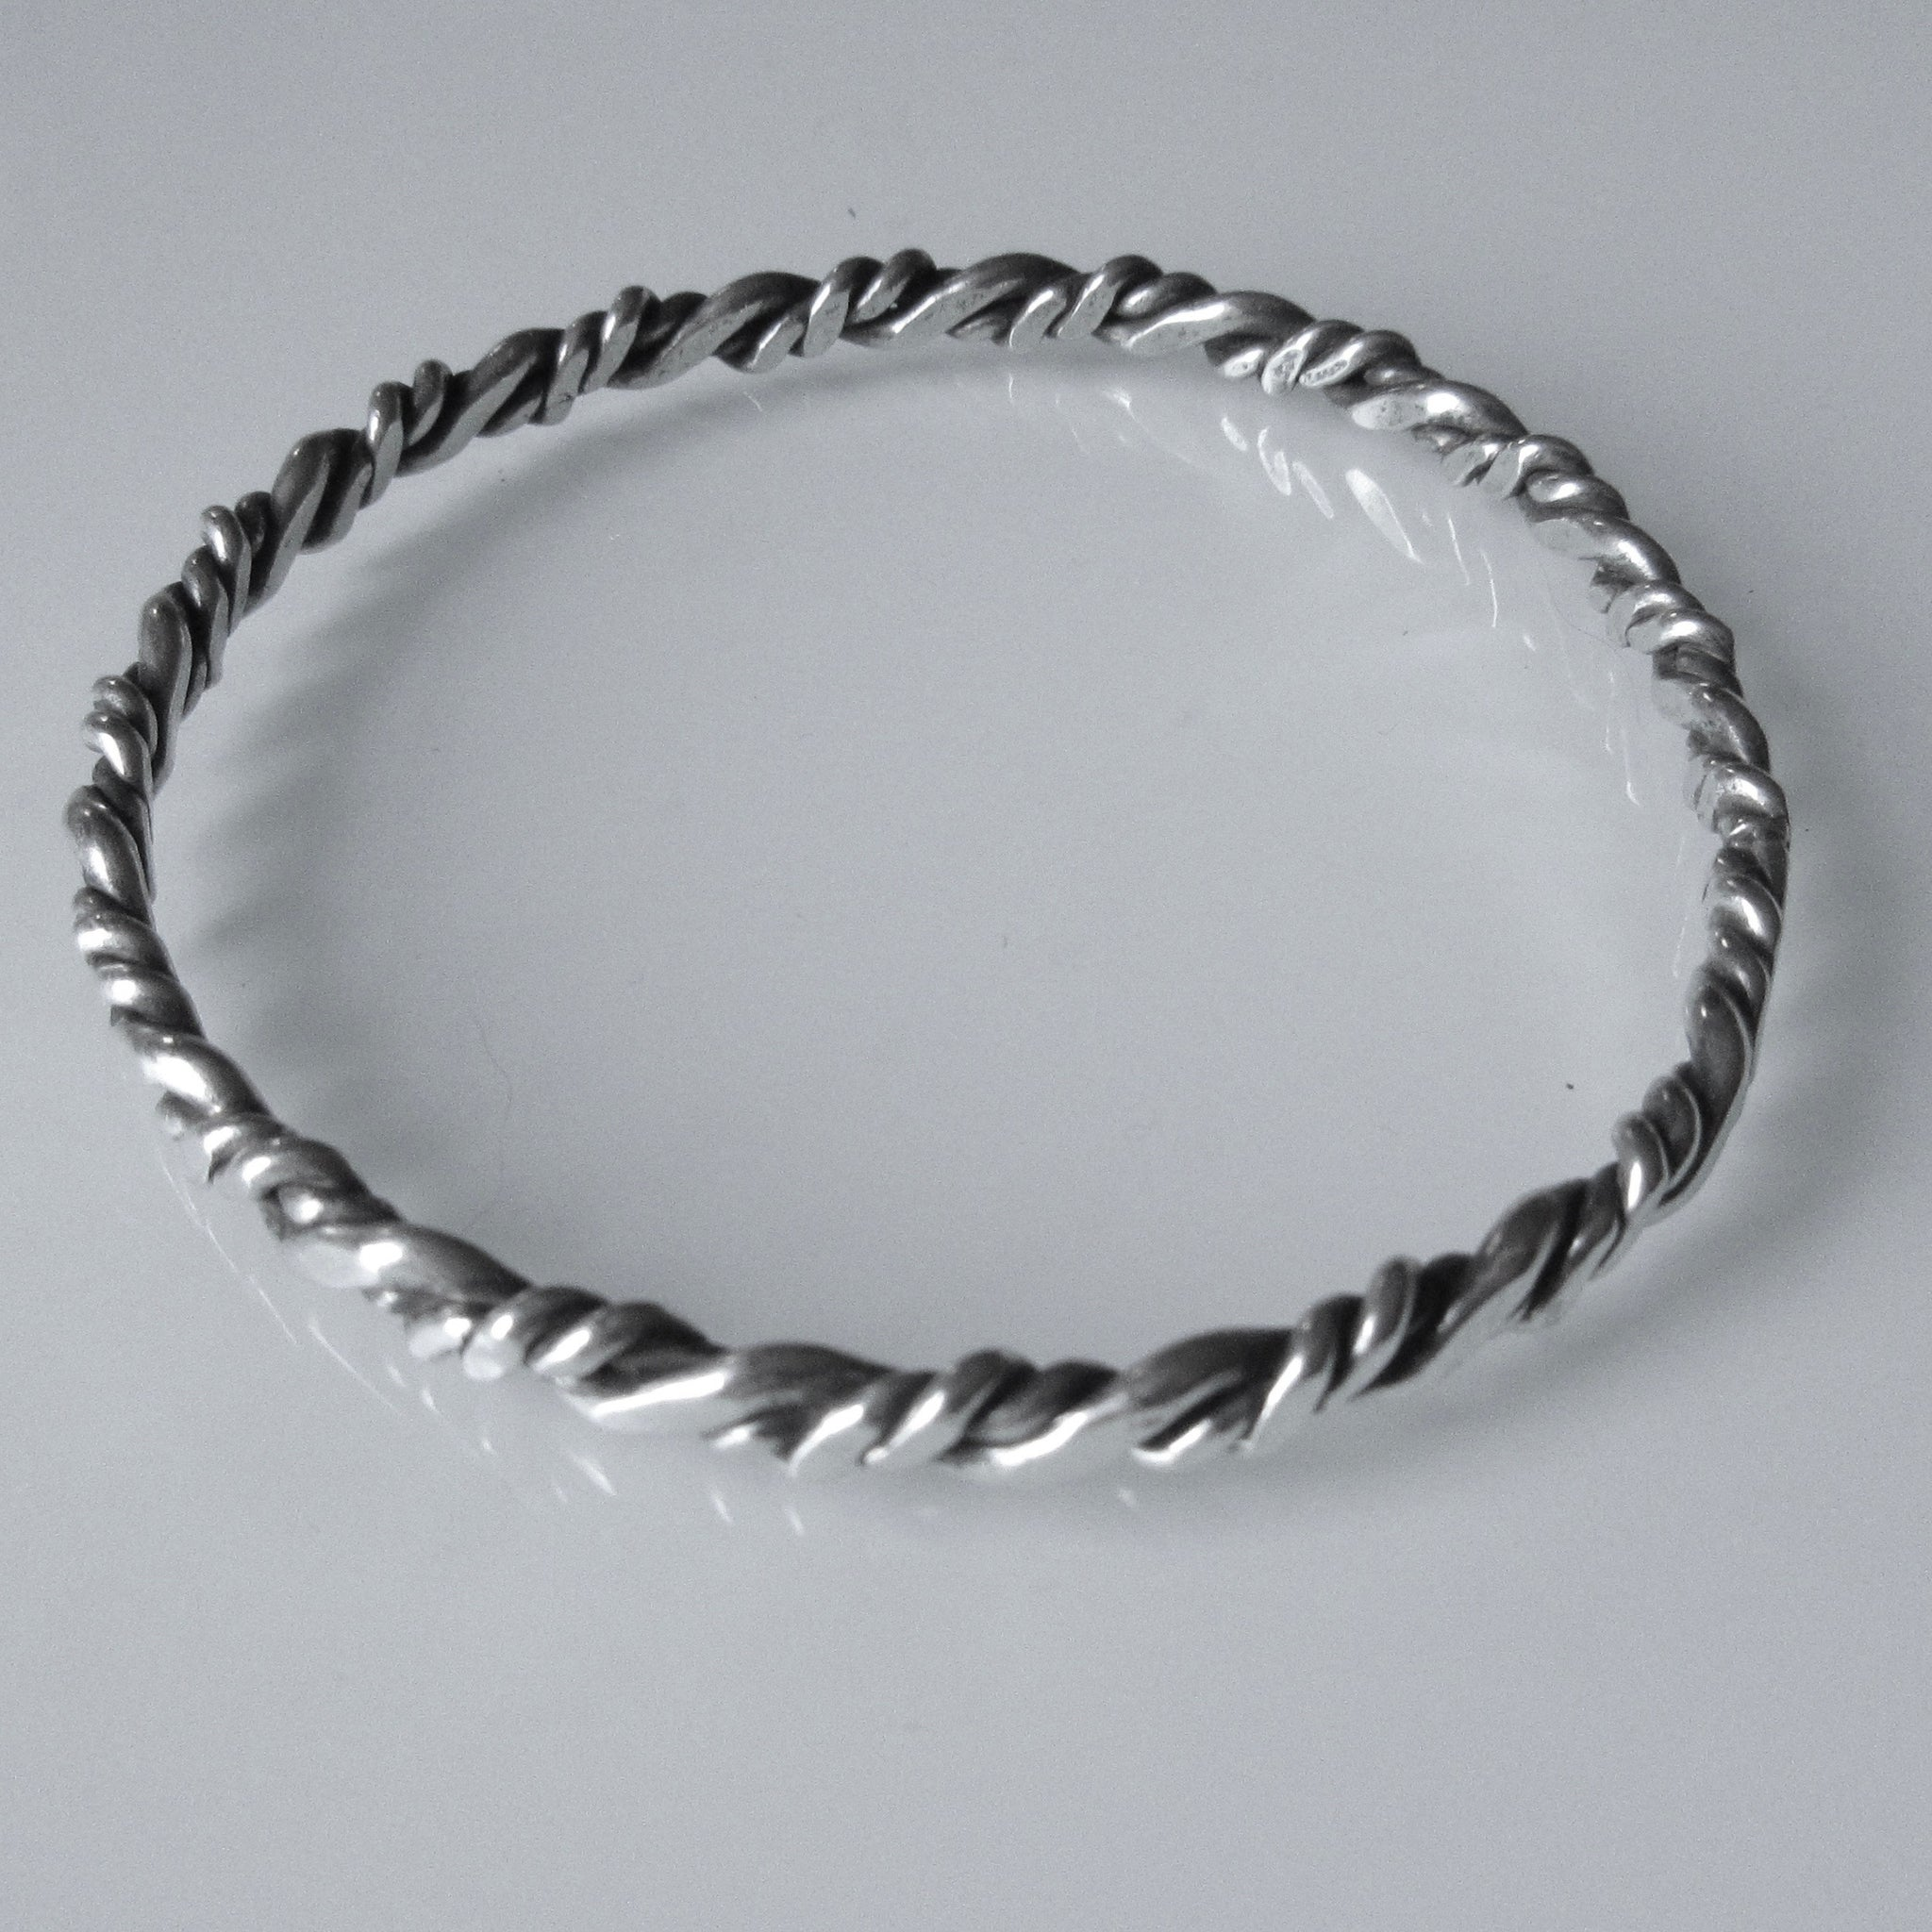 Wrapped Flat Patina Sterling Silver Bangle